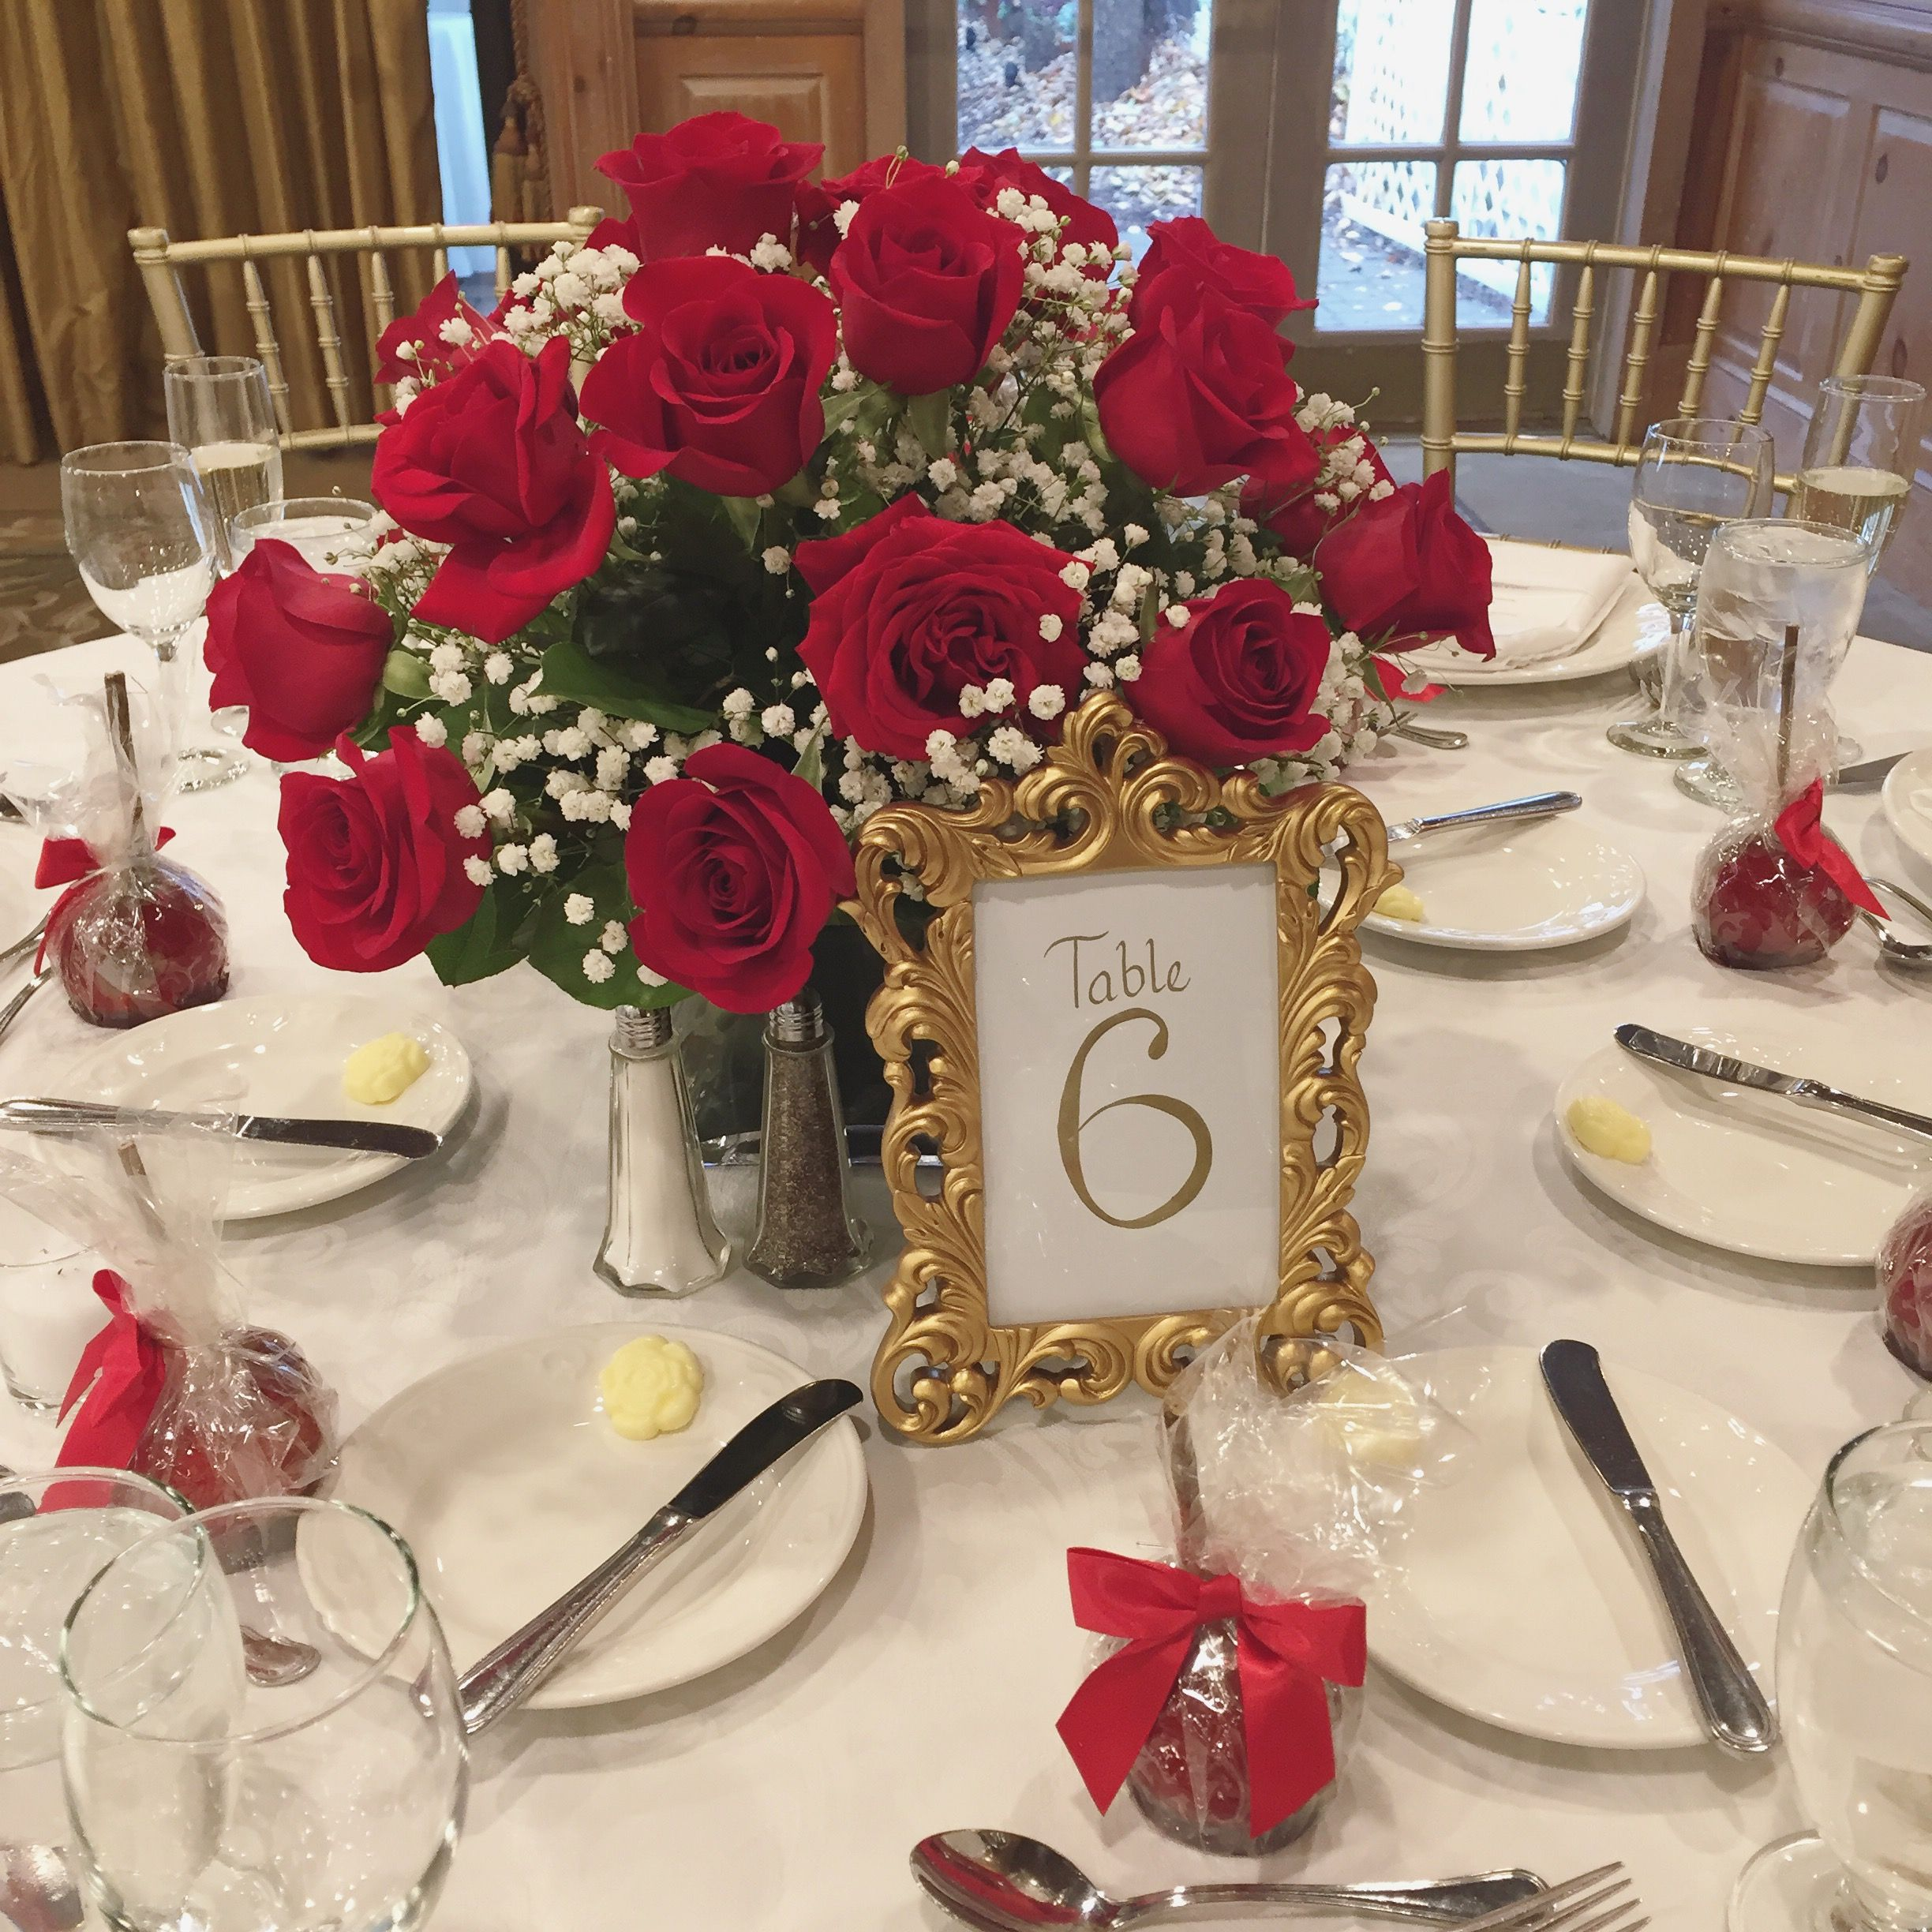 The Perfect Centerpiece For A Snow White Themed Wedding Wedding Centerpieces F Snow White Wedding White Wedding Centerpieces Snow White Wedding Invitations